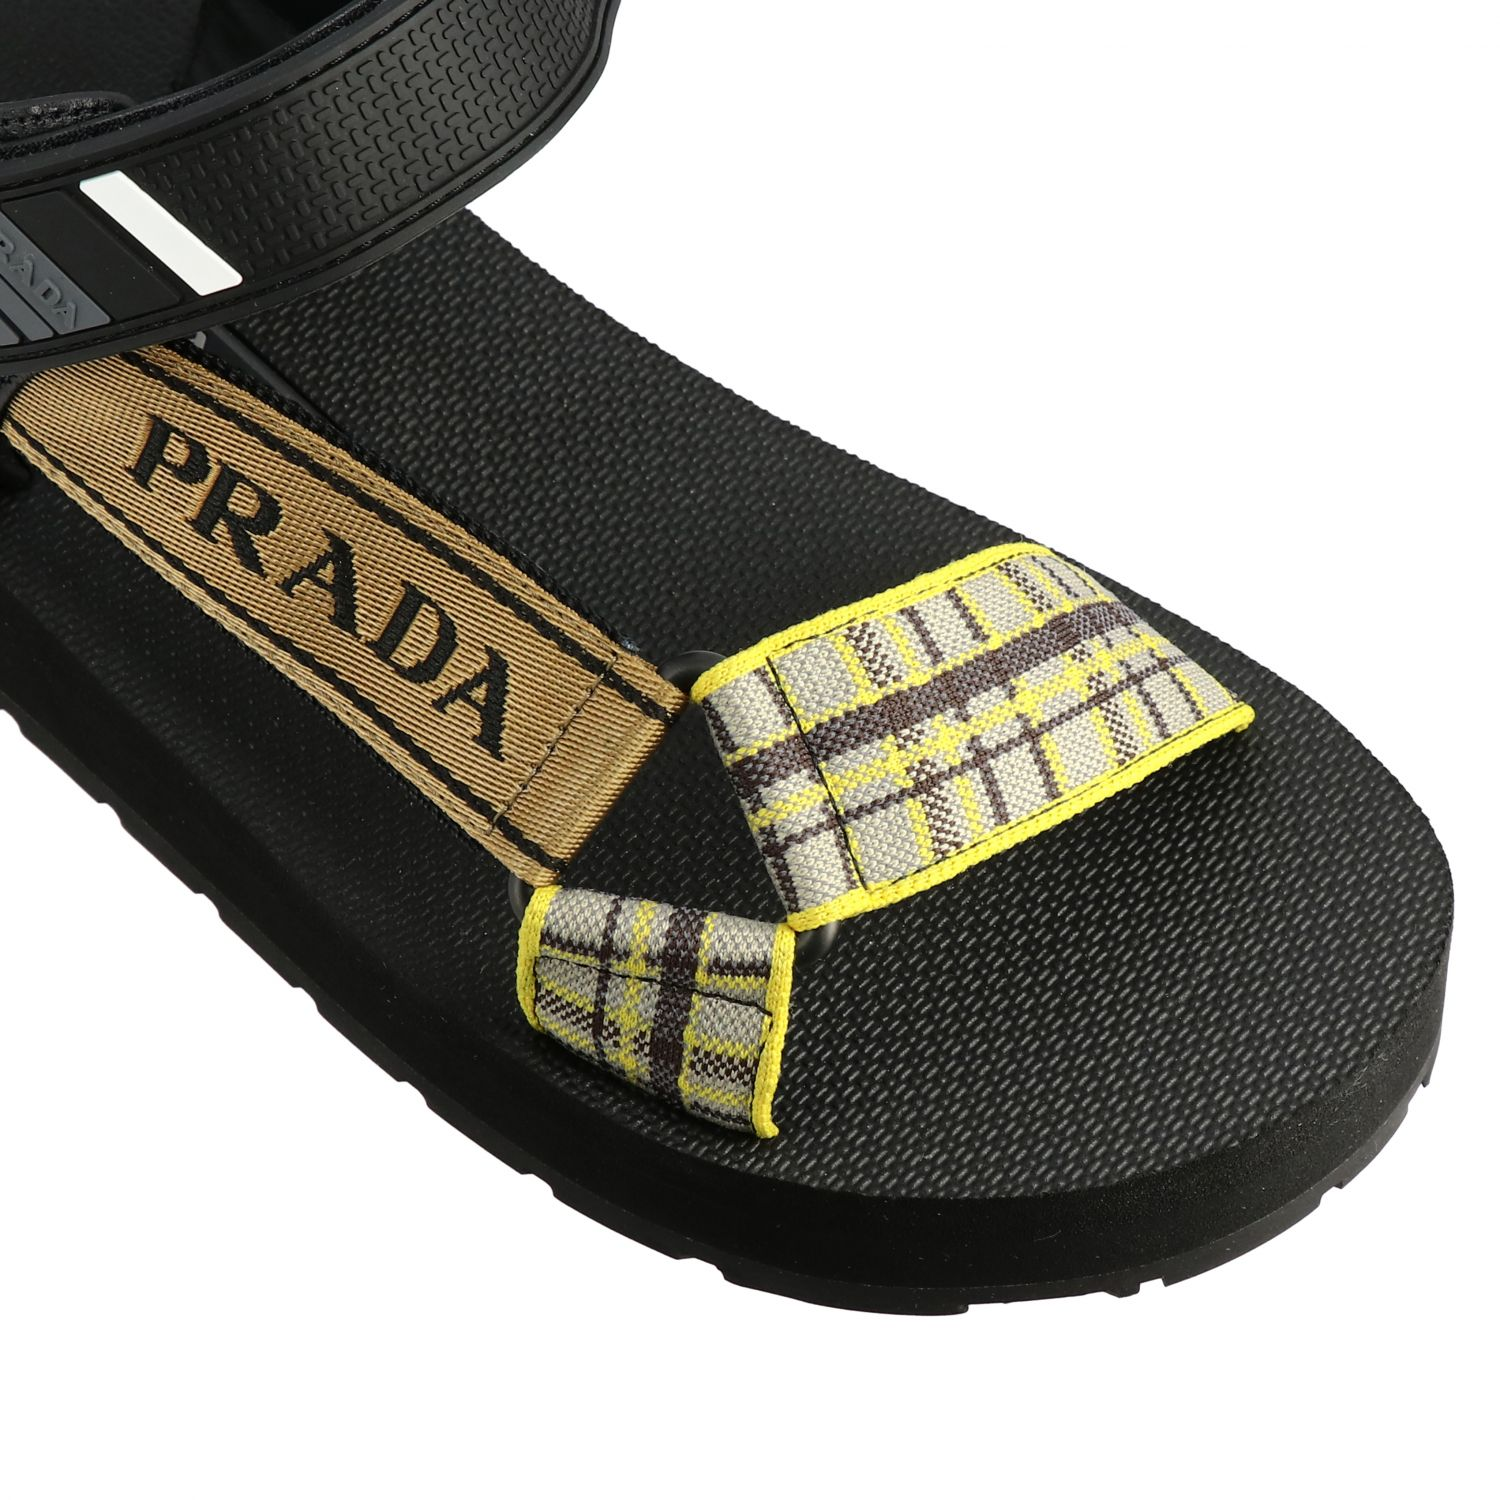 Shoes women Prada black 4